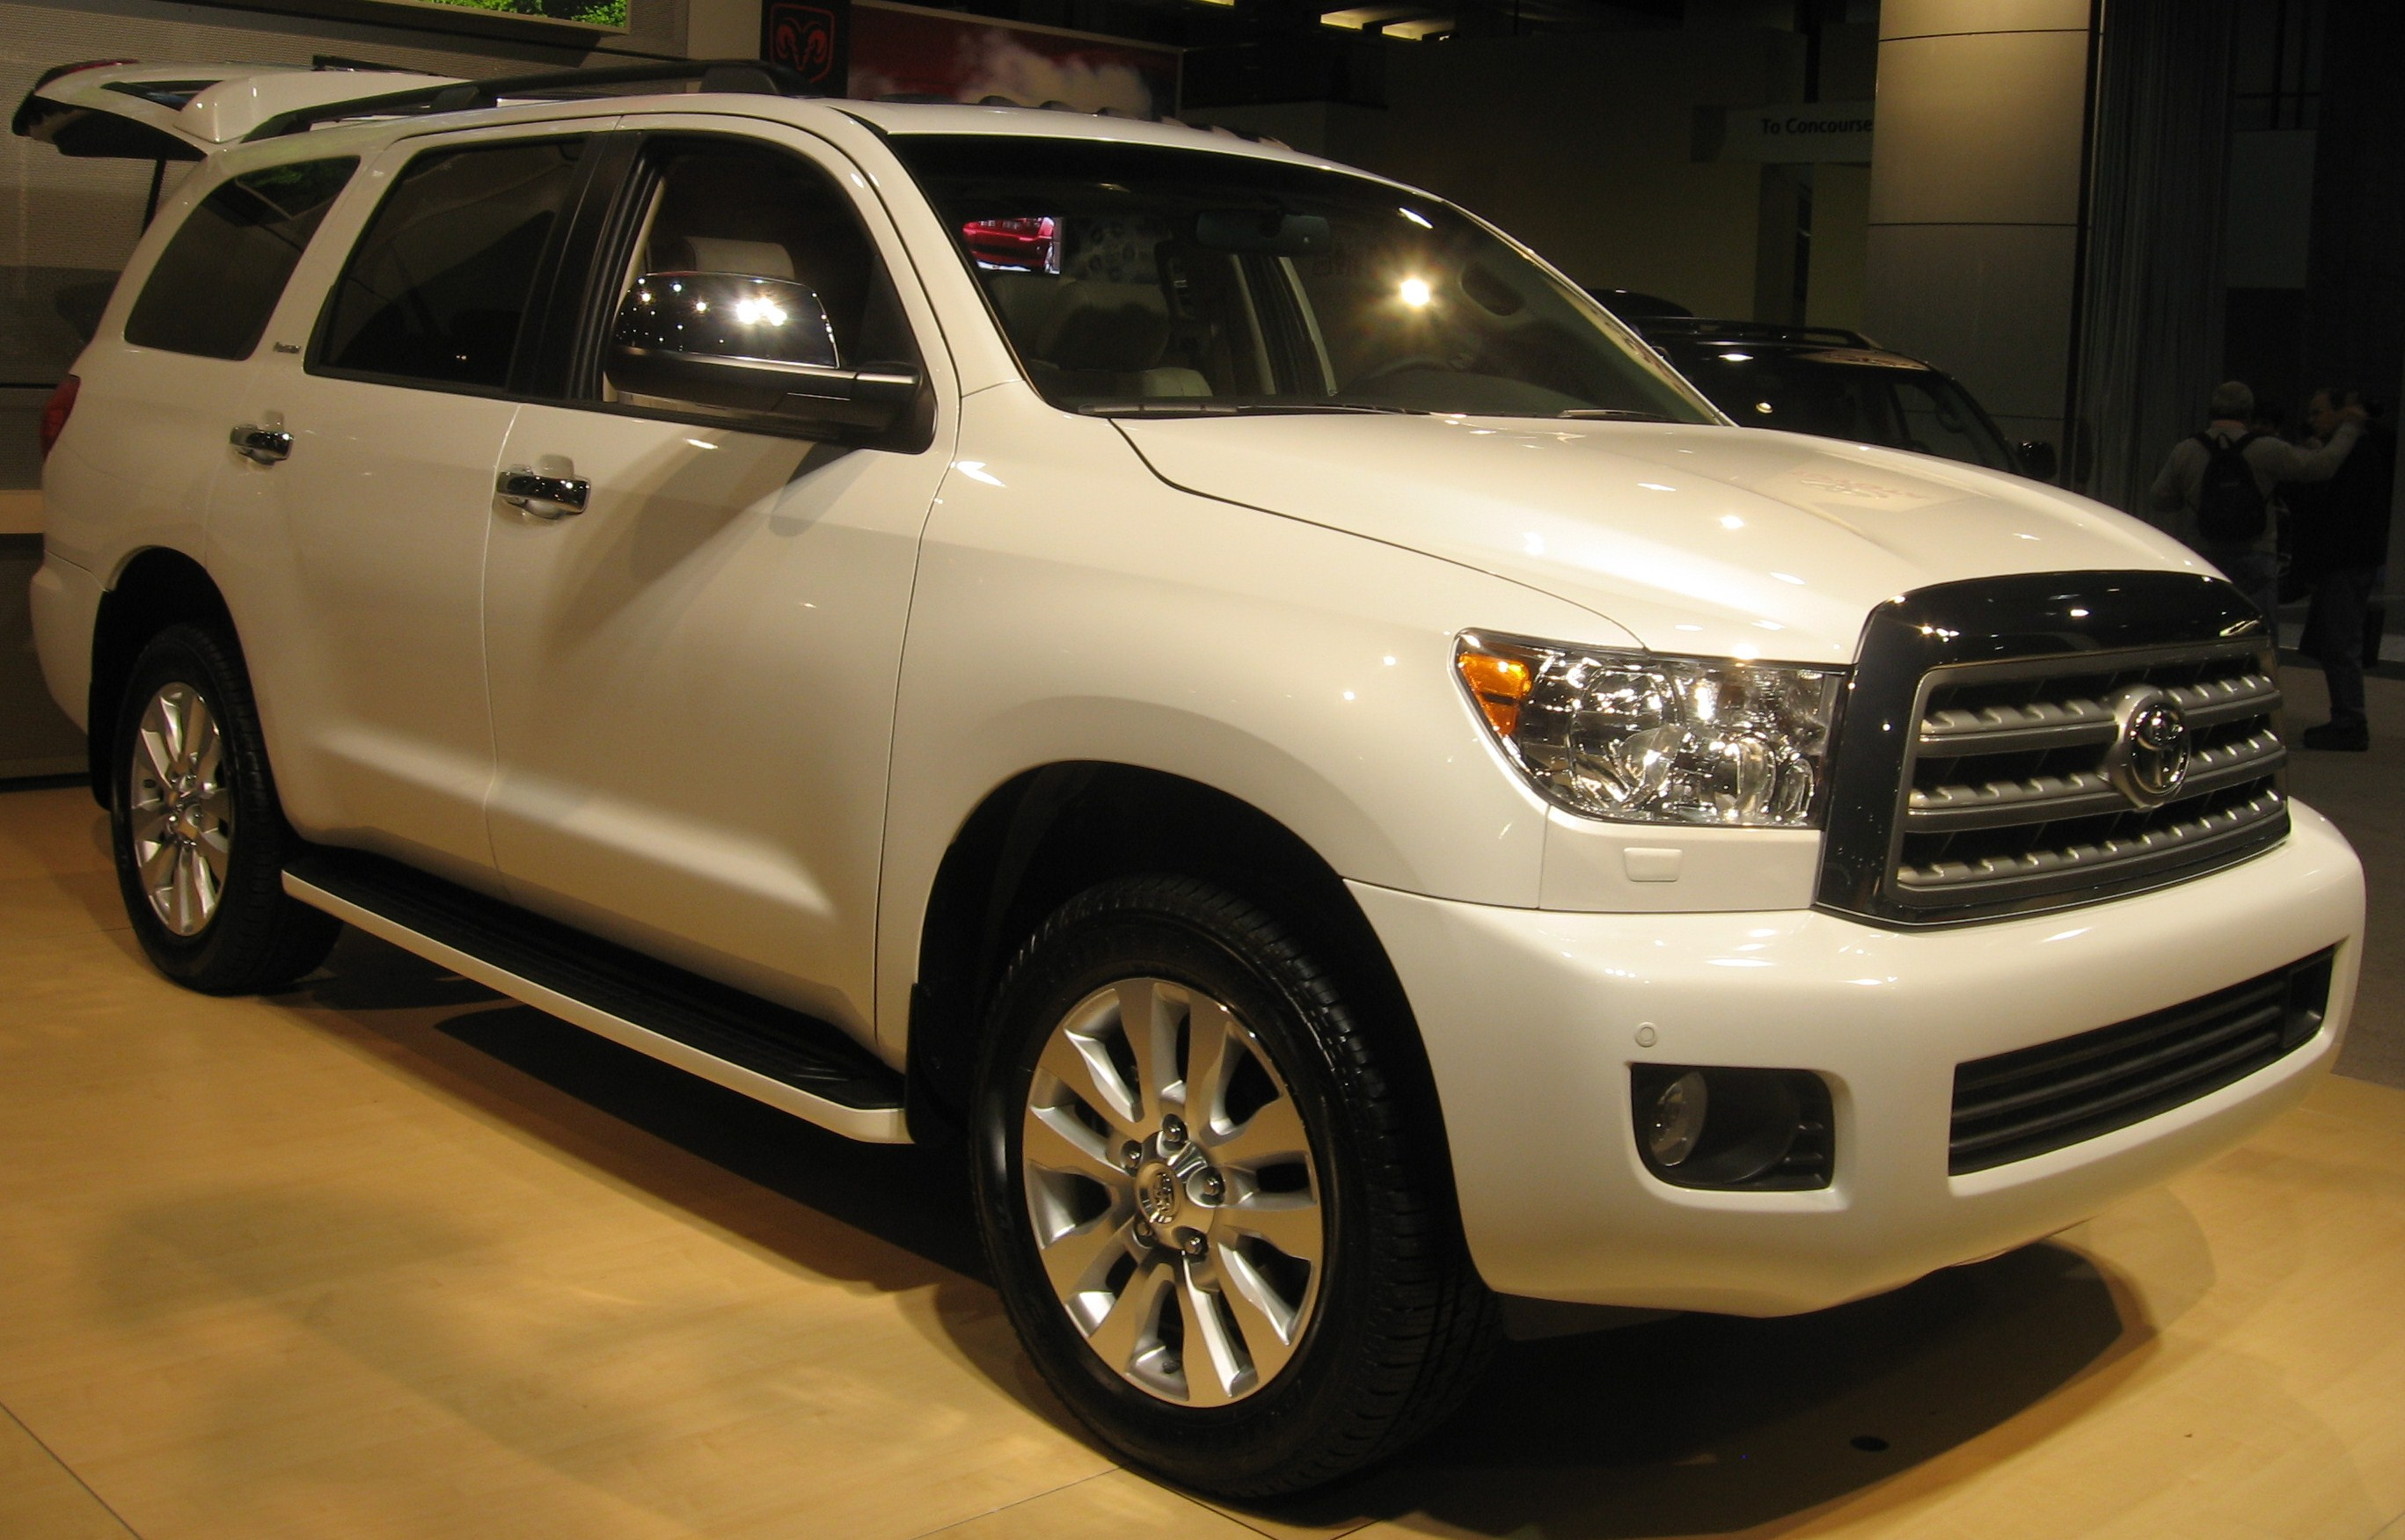 sale for toyota limited of amherst scotia used in sequoia passanger nova